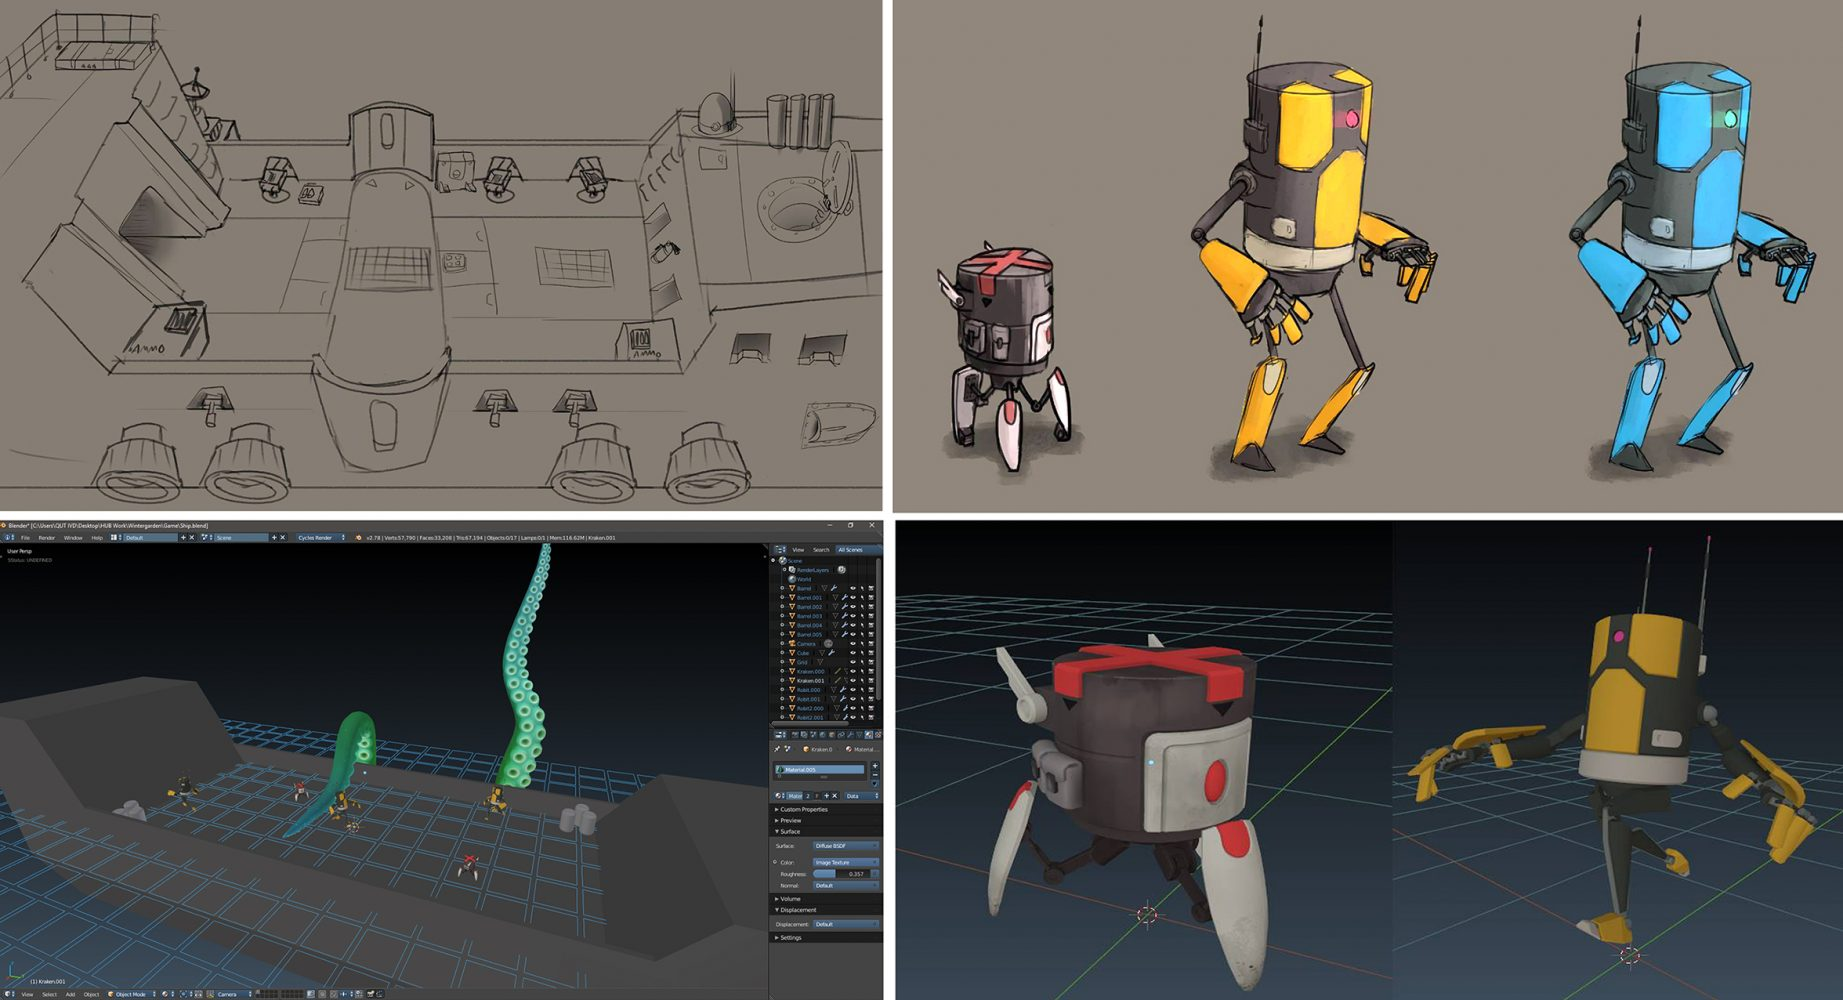 Progress shots of Scuttlebot Mayhem from concept drawings to 3D rendering